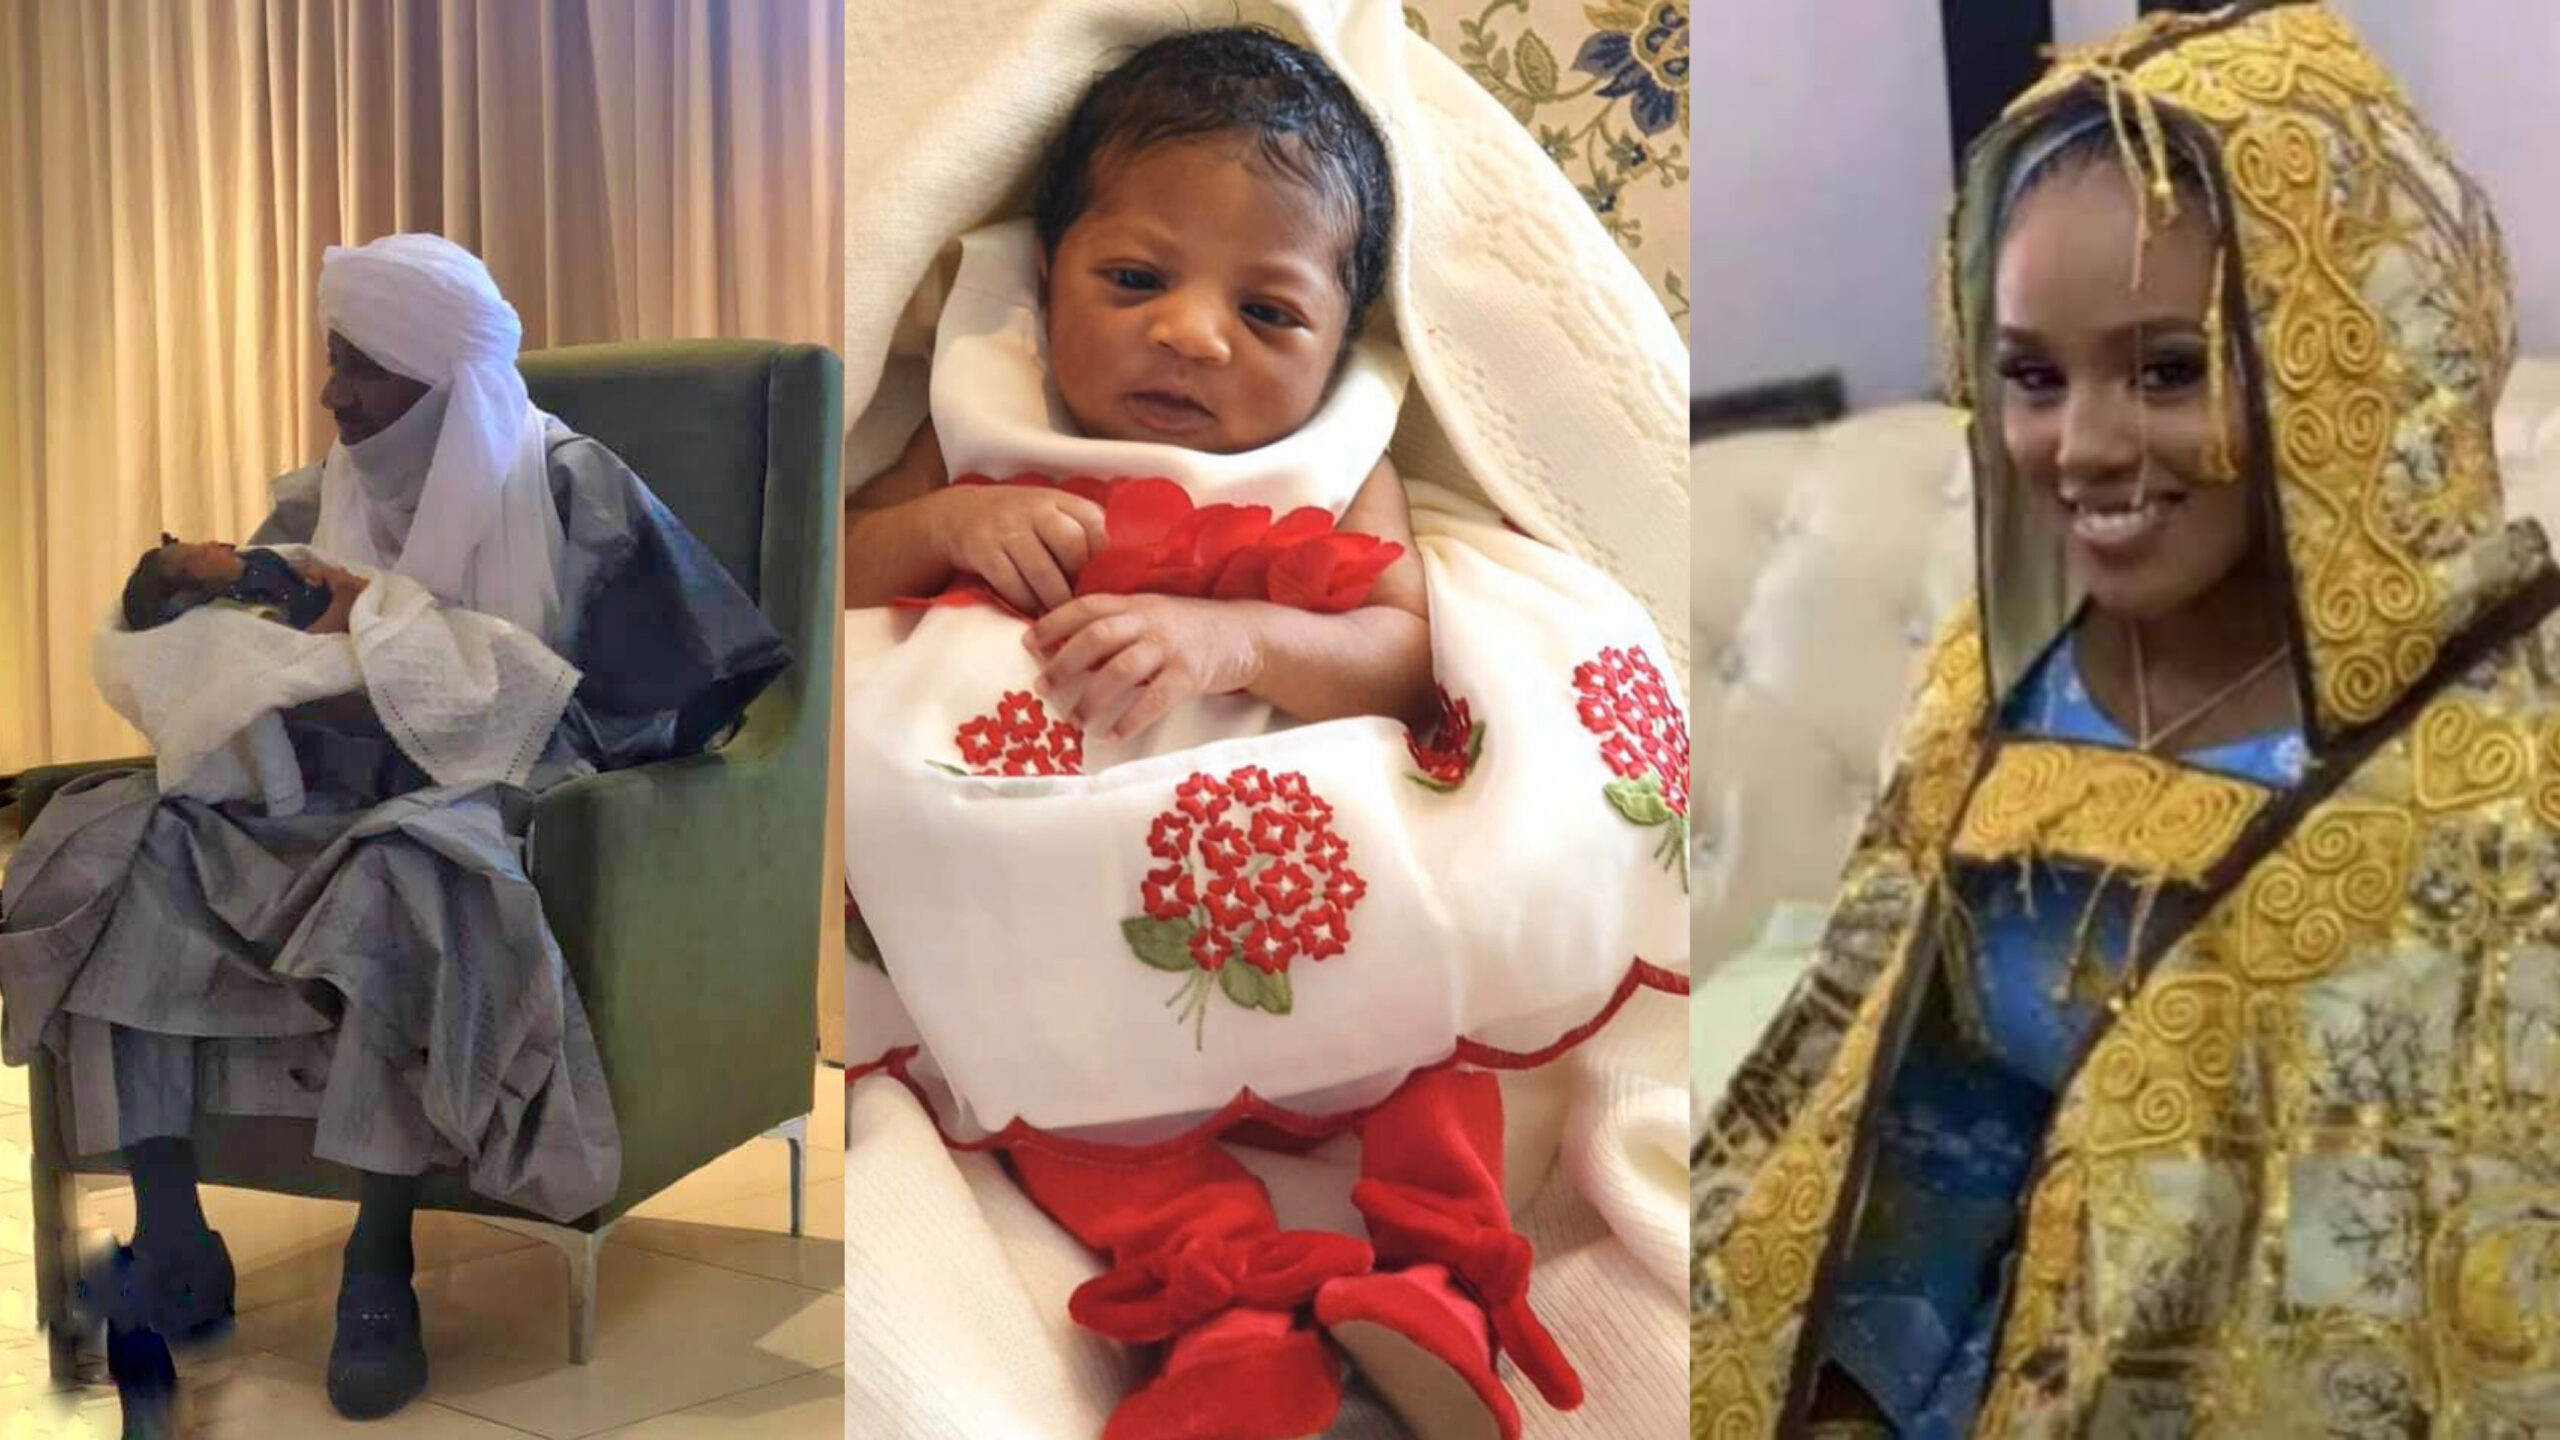 Photos of deposed Emir of Kano, Sanusi Lamido Sanusi with his daughter he recently welcomed with 4th wife